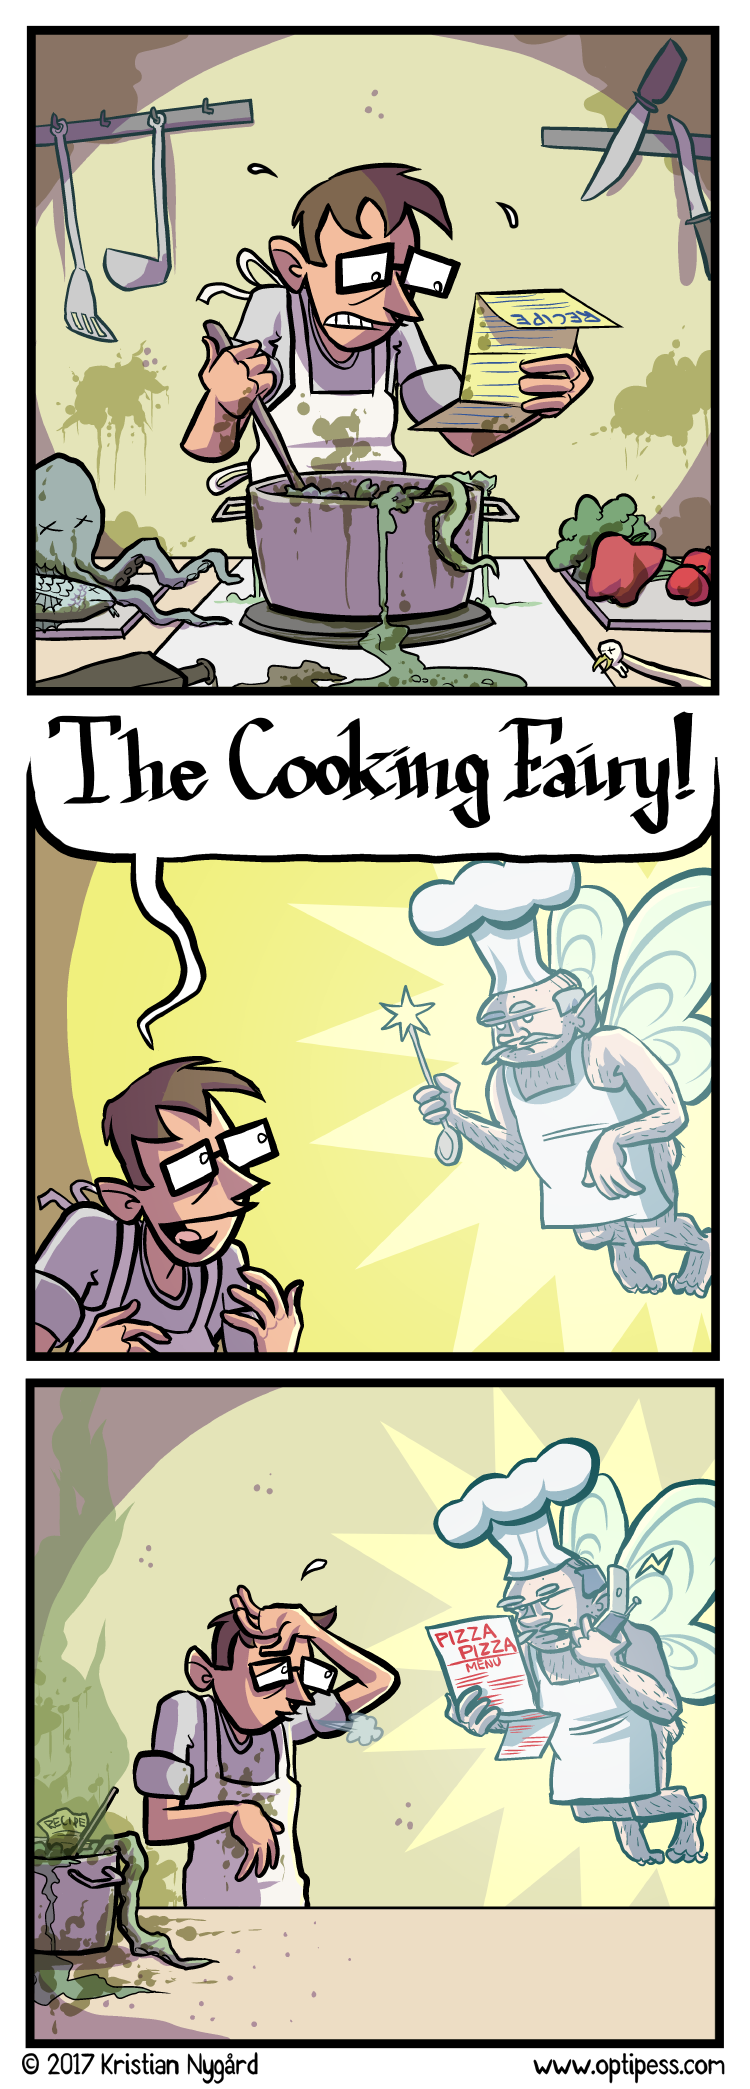 Of course, The Cooking Fairy had to show up at the pizza place as well. Where he had to order from another pizza place. And repeat.